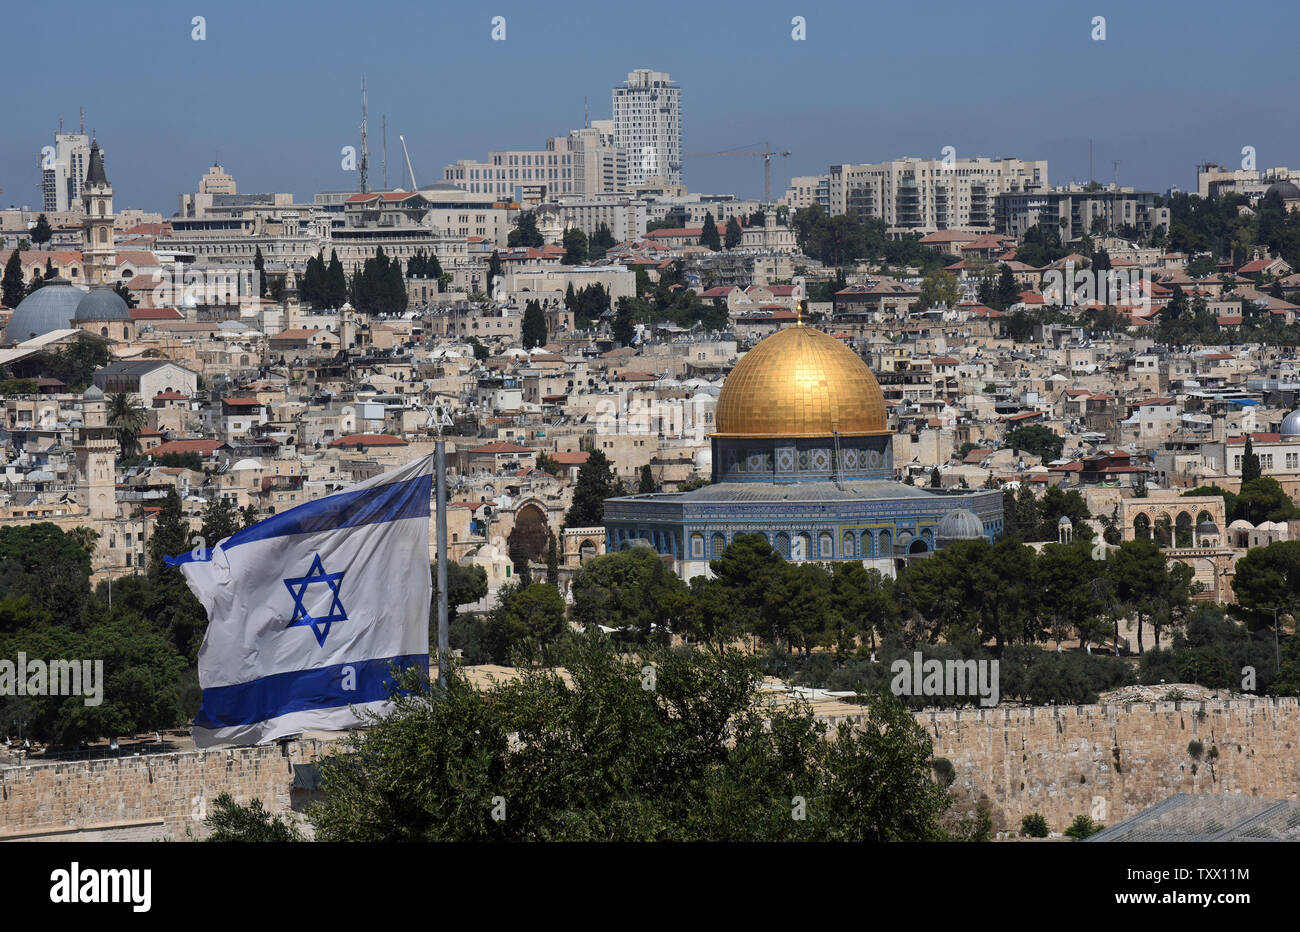 An Israeli flag flies on Mt. of Olives, overlooking the Old City of Jerusalem, June 25, 2018. Prince William will  receive a briefing on the history and geography of Jerusalem's Old City from the Mt. of Olives this week, on the first state visit to the Holy Land by a member of the royal family. Israeli ministers slammed Prince William's official itinerary because it describes the Old City of Jerusalem as being in Occupied Palestinian Territories.  Photo by Debbie Hill/UPI - Stock Image